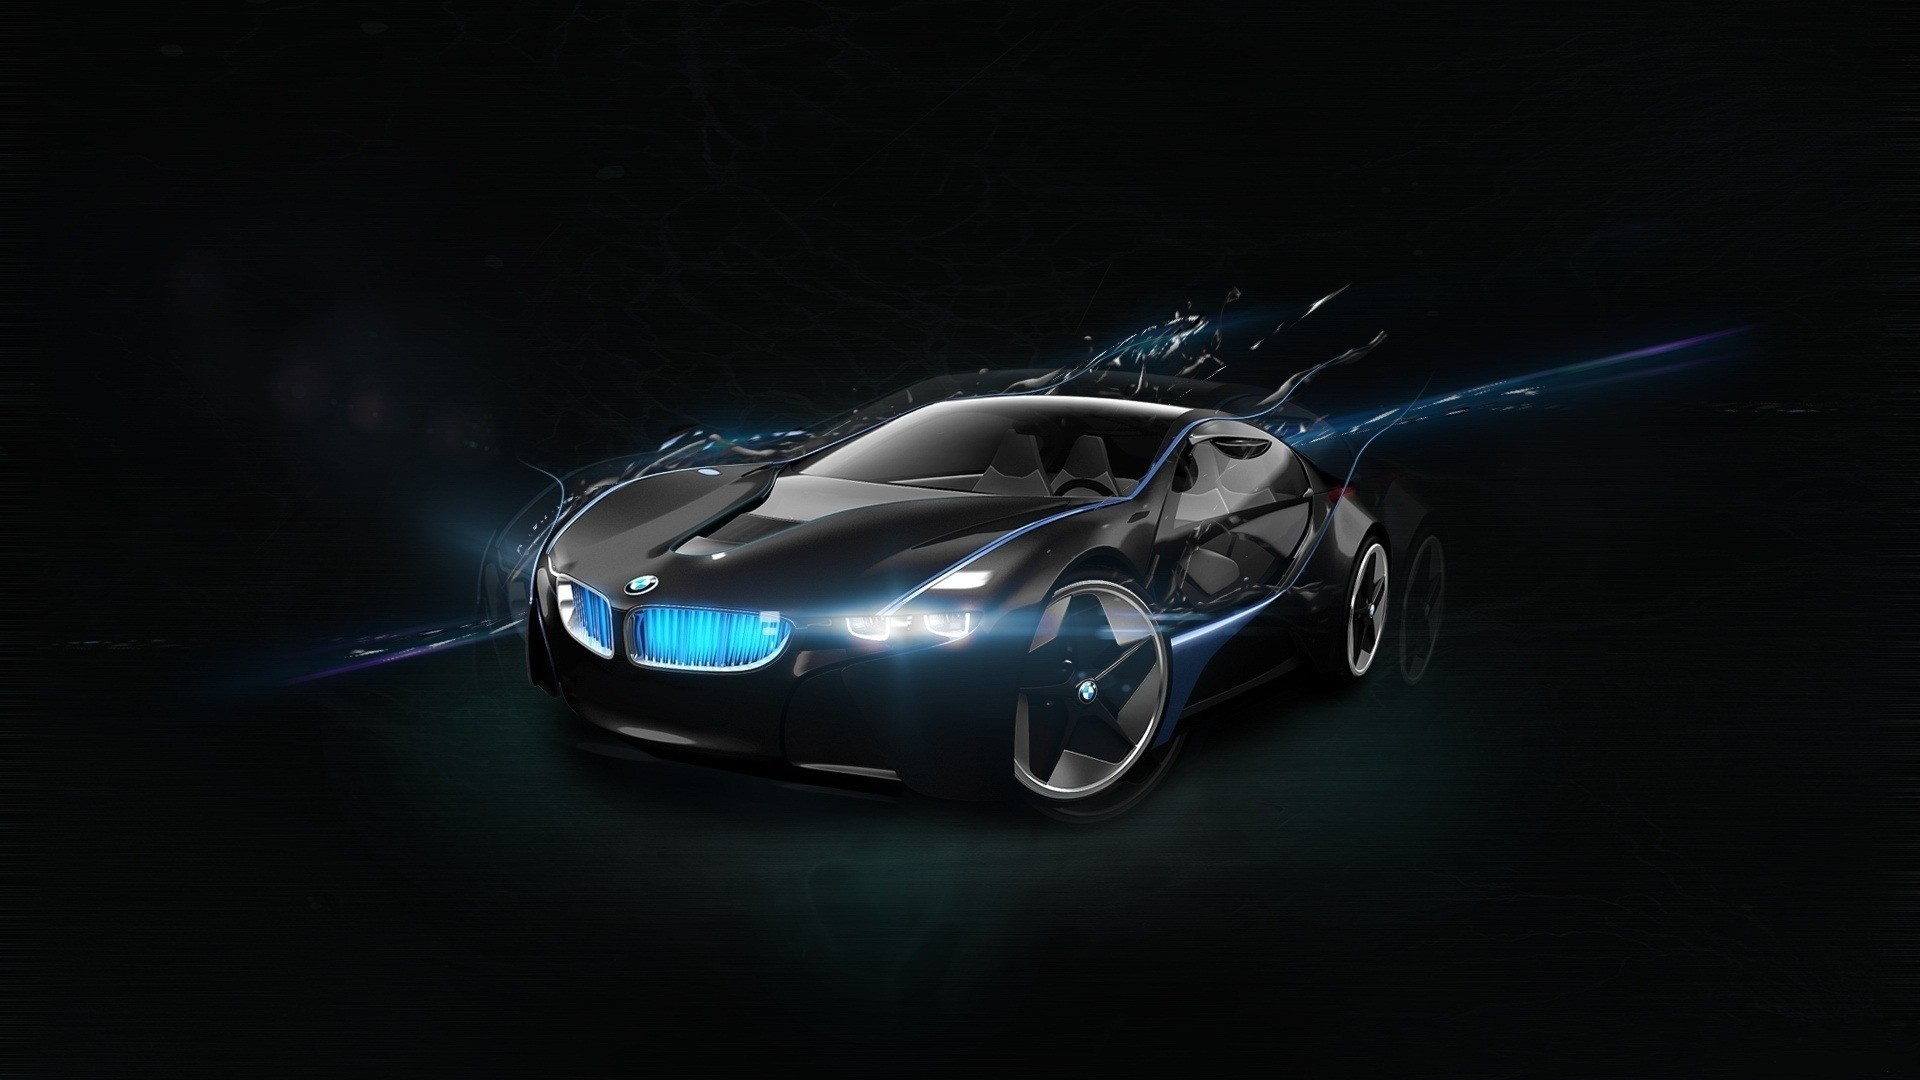 BMW Vision Super Car Wallpapers HD 1920x1080